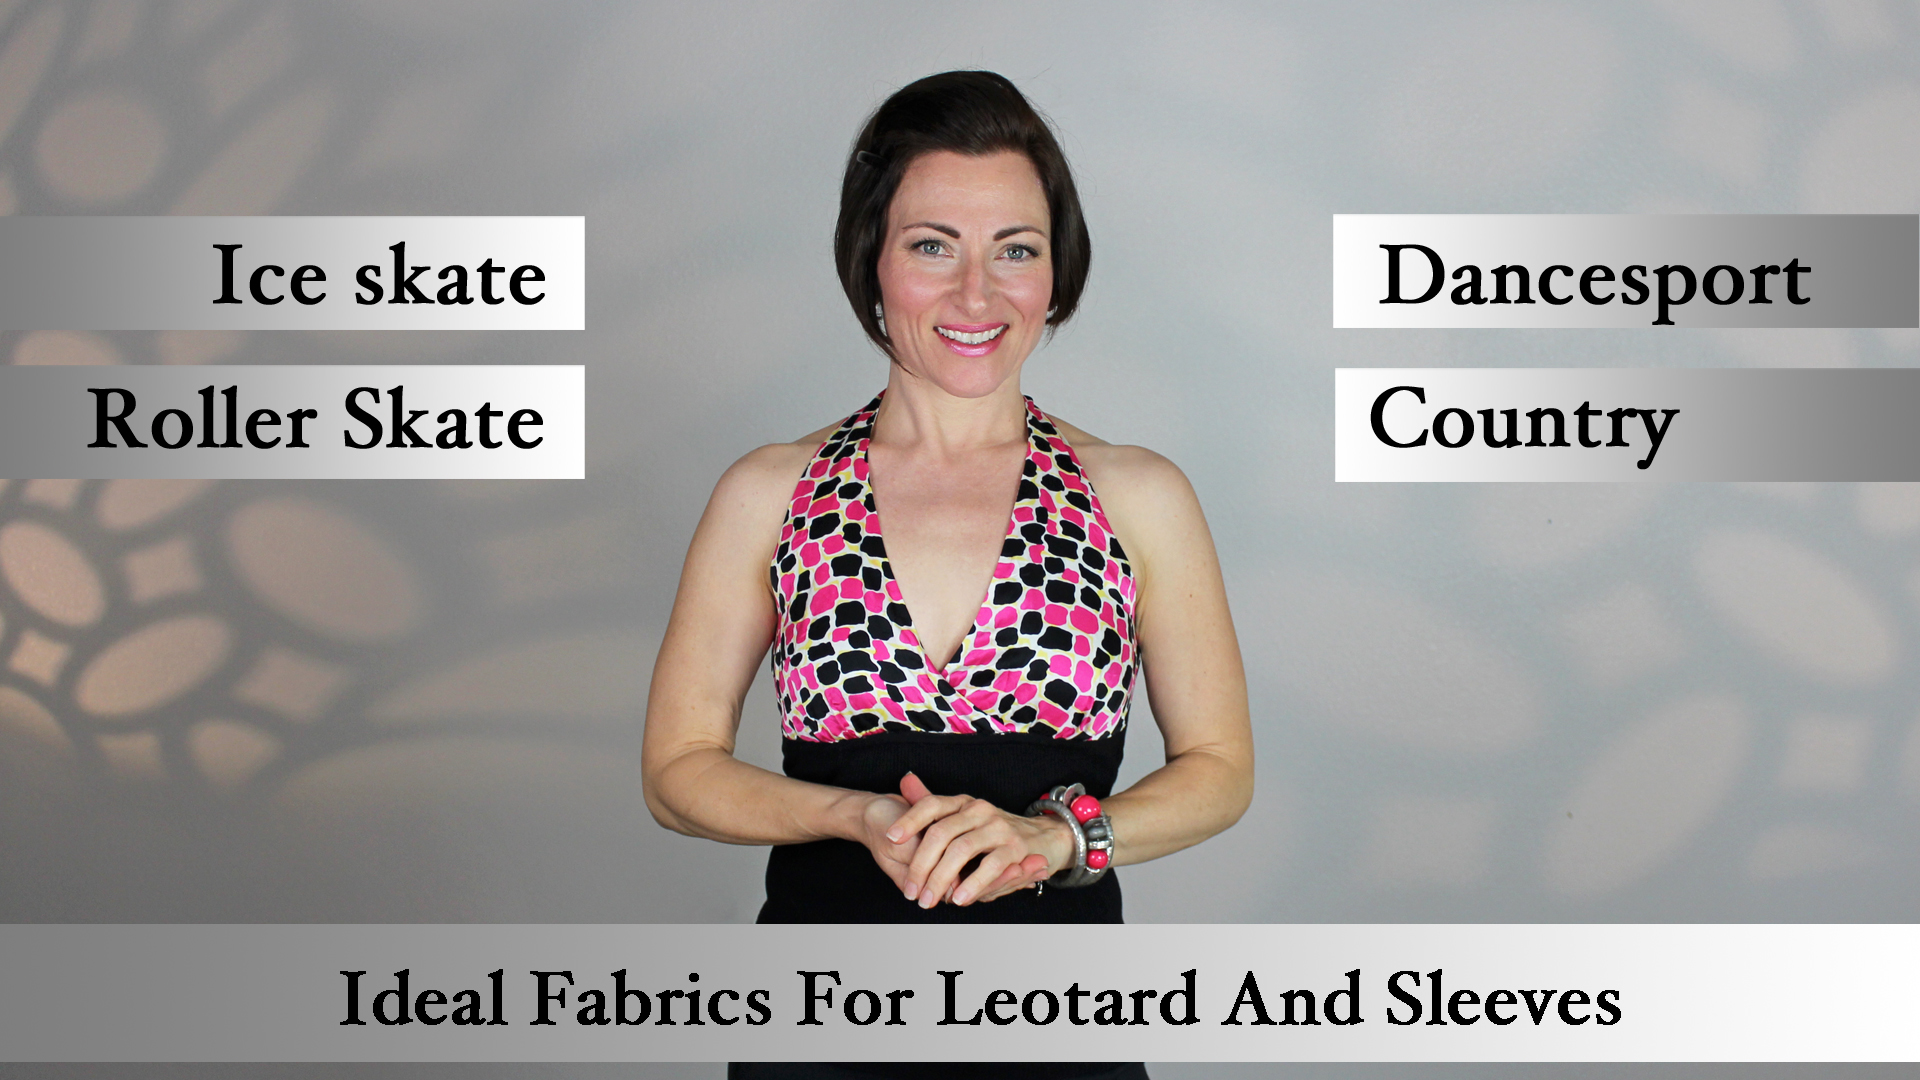 Ideal Fabrics for Leotards and Sleeves for competition Dancesport, Country and Skate Dresses.